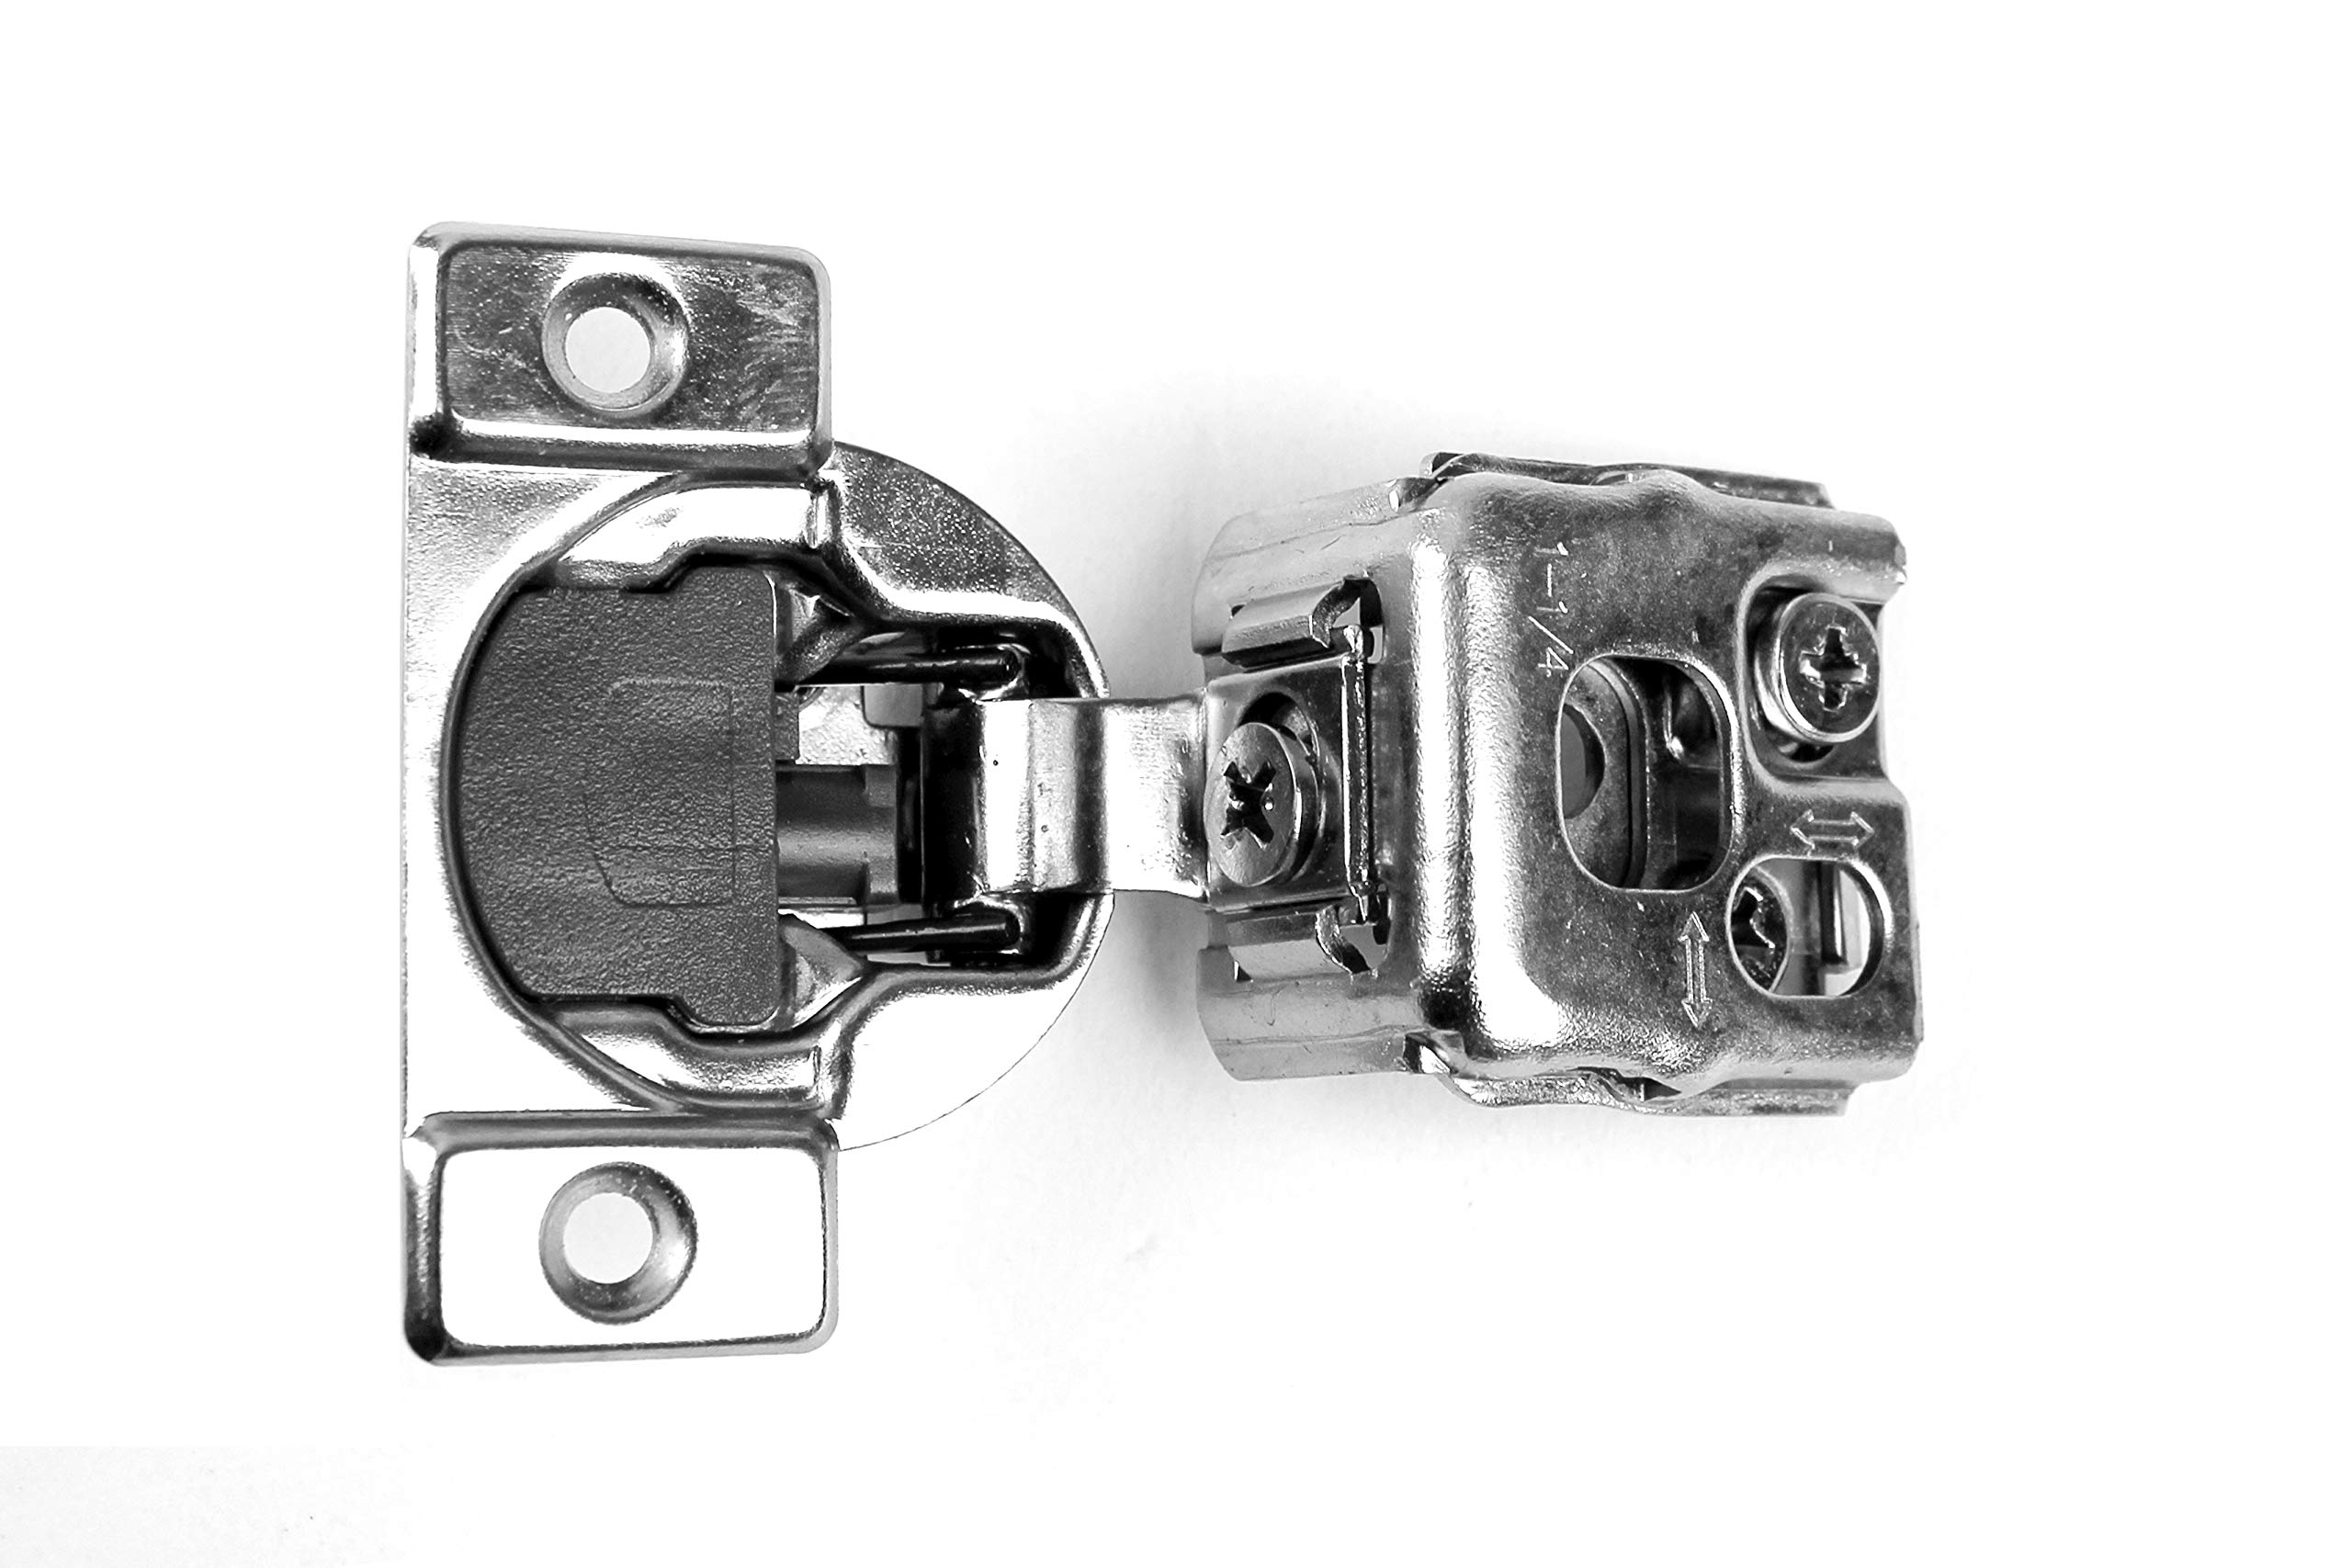 40 Pack Berta 6-Ways 3-cam Adjustment, 1 1/4'' Overlay Cabinet Door Hinges with Built-in Soft Close -105 Degree with Screws